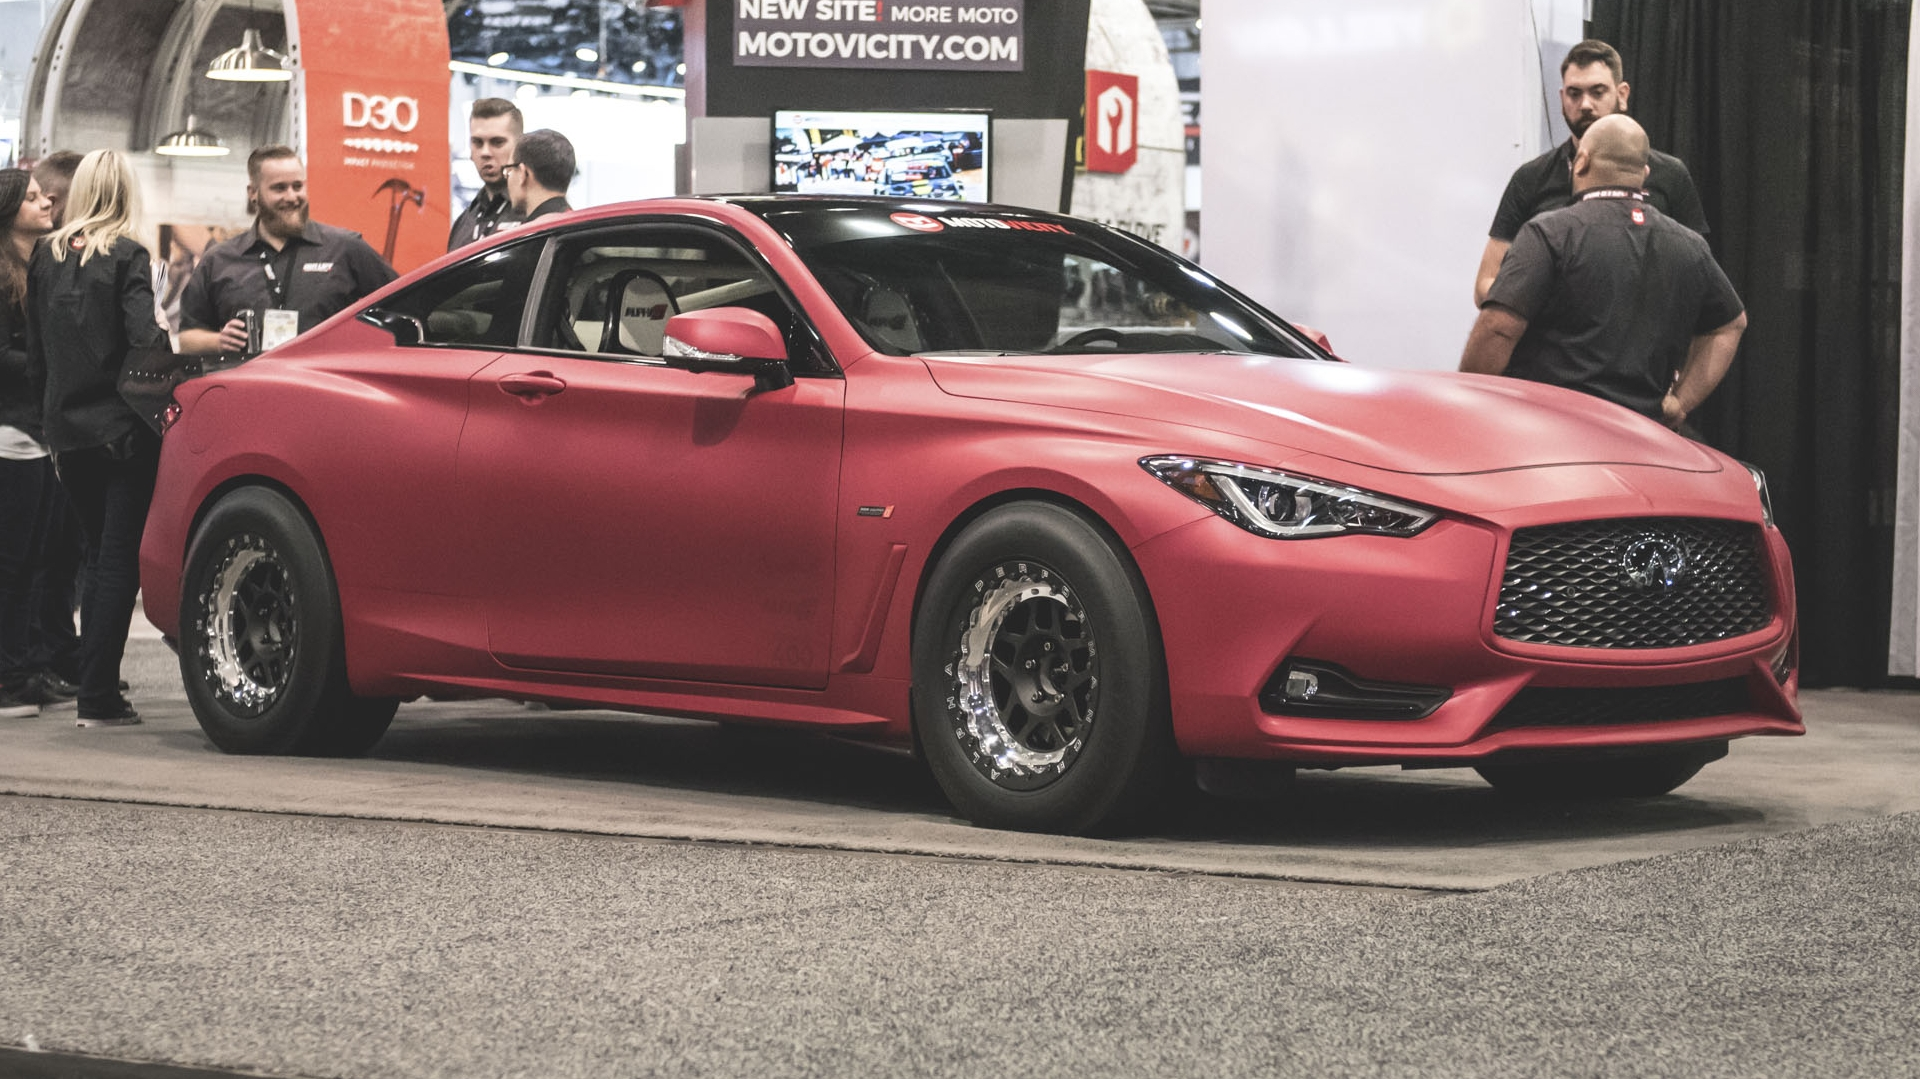 Infiniti Q60 Red Alpha >> 2017 Infiniti Q60 Red Alpha Concept Review - Gallery - Top Speed